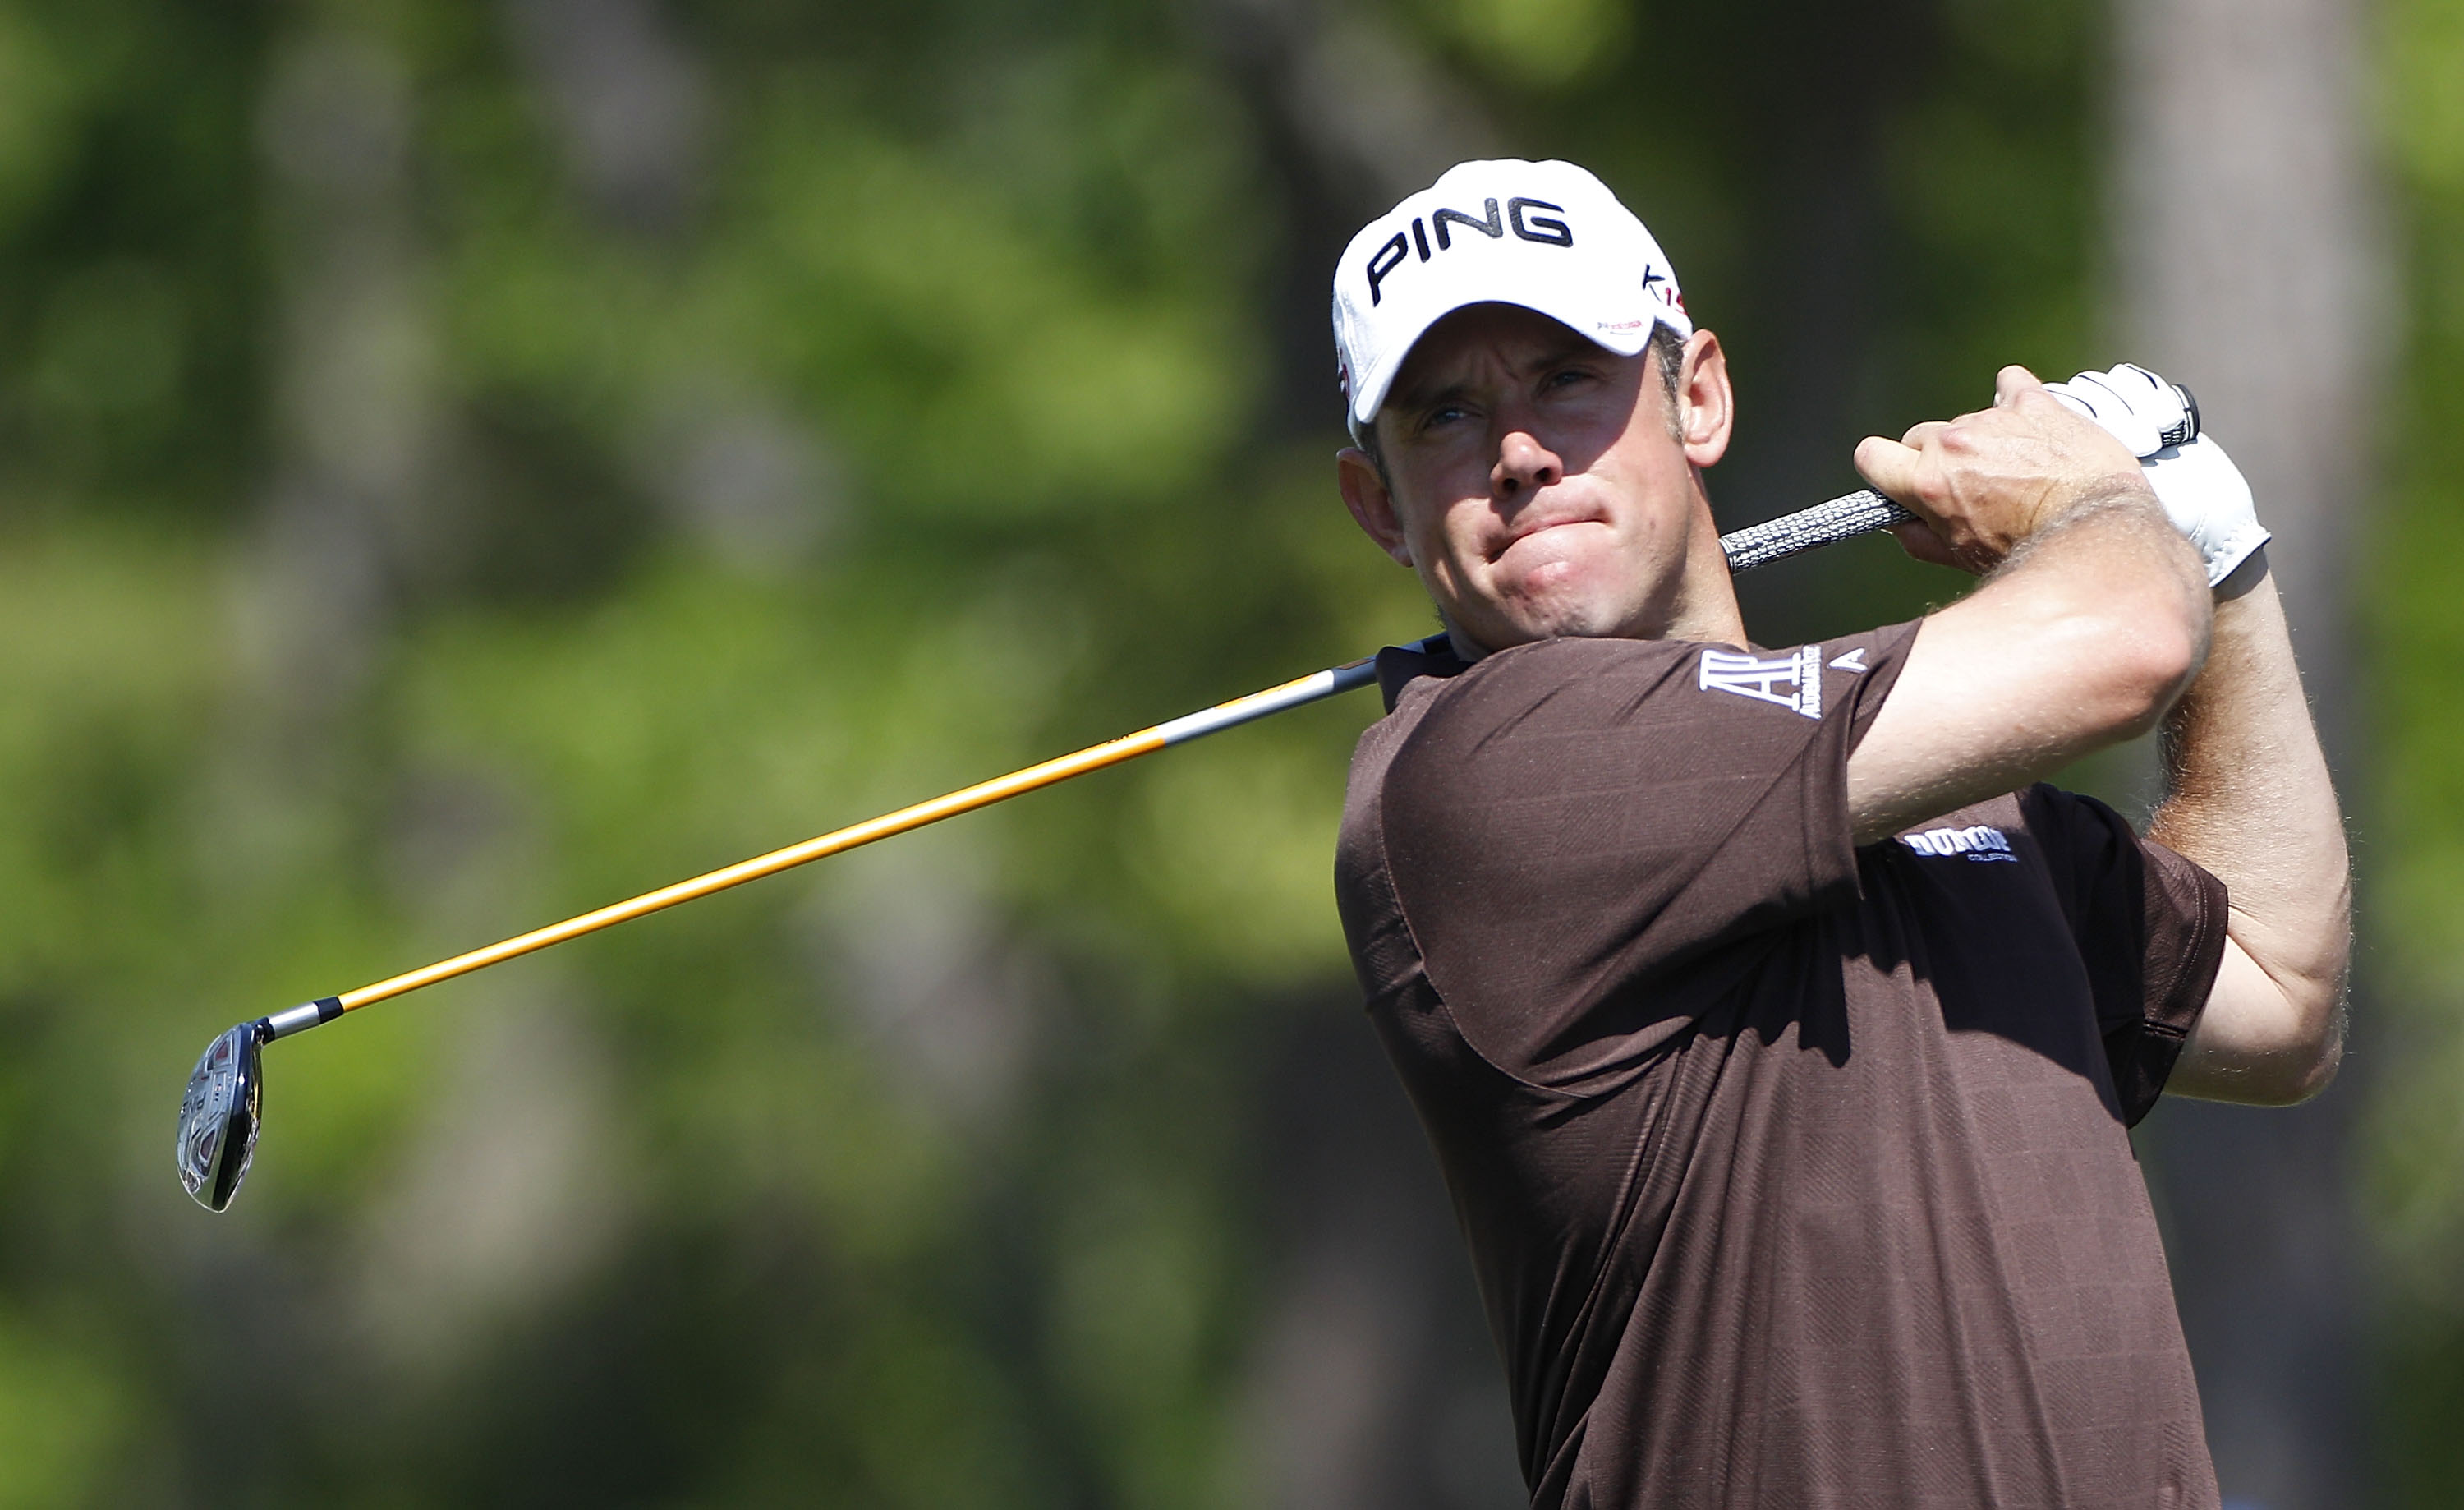 HUMBLE, TX - MARCH 31:  Lee Westwood of England hits a drive during the first round of the Shell Houston Open at Redstone Golf Club on March 31, 2011 in Humble, Texas.  (Photo by Michael Cohen/Getty Images)